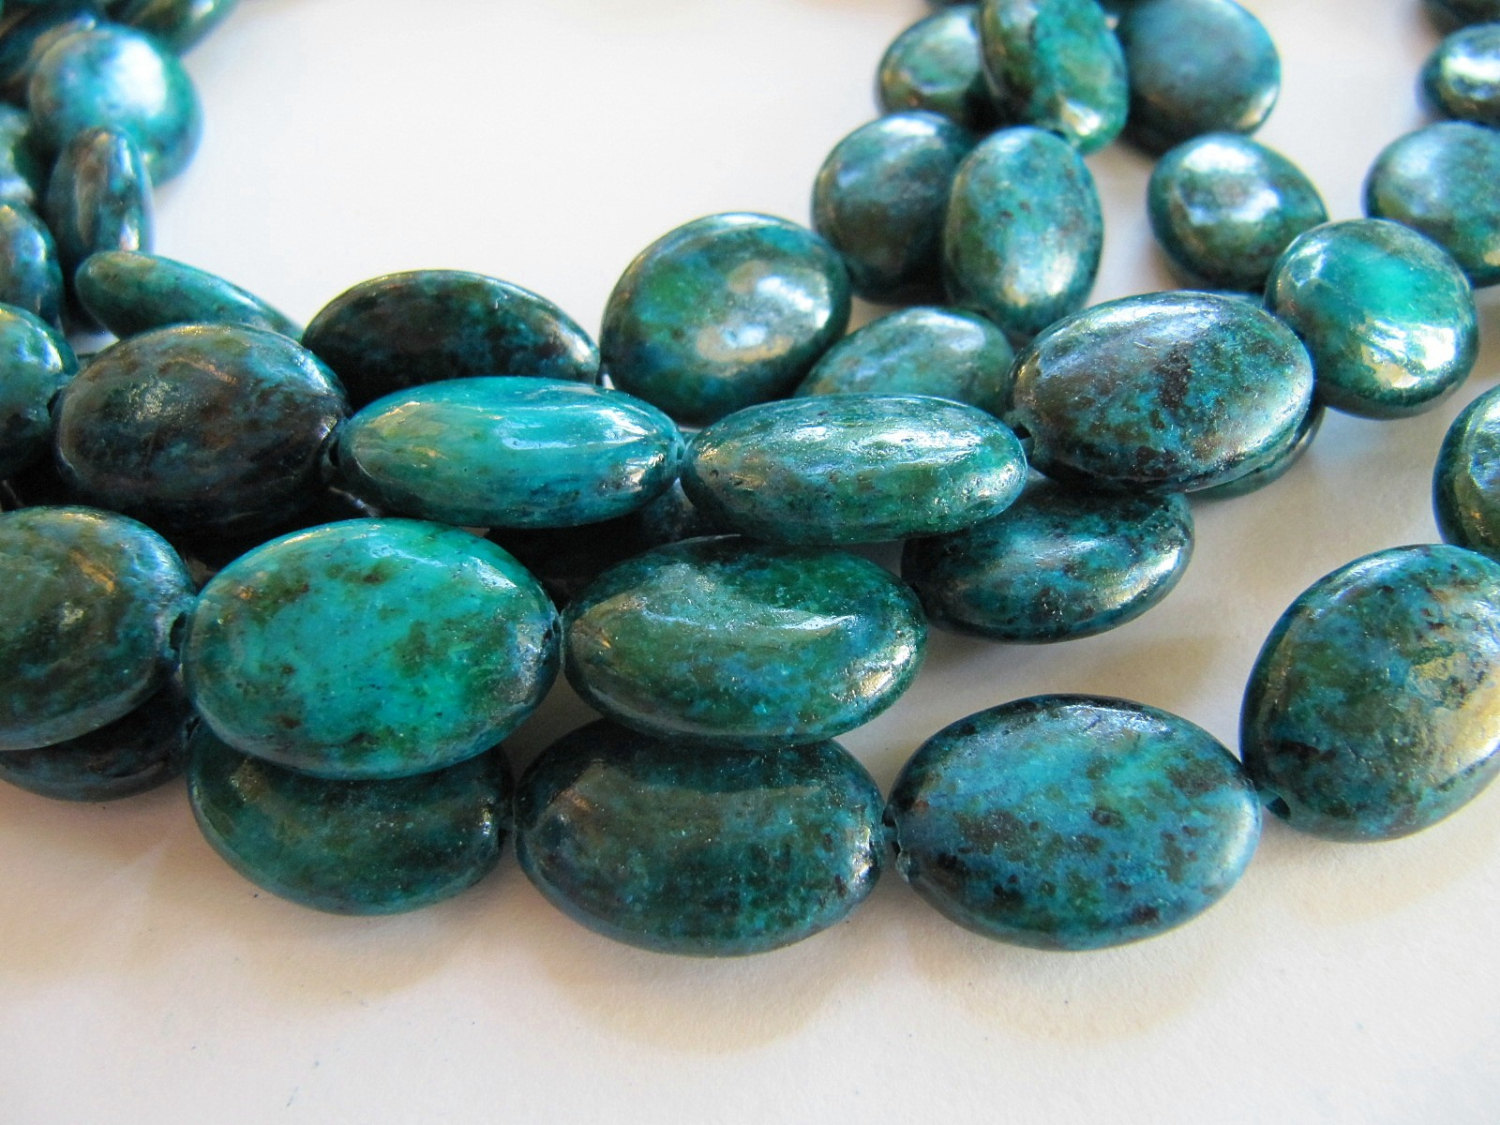 Chrysocolla Meanings, Properties and Uses